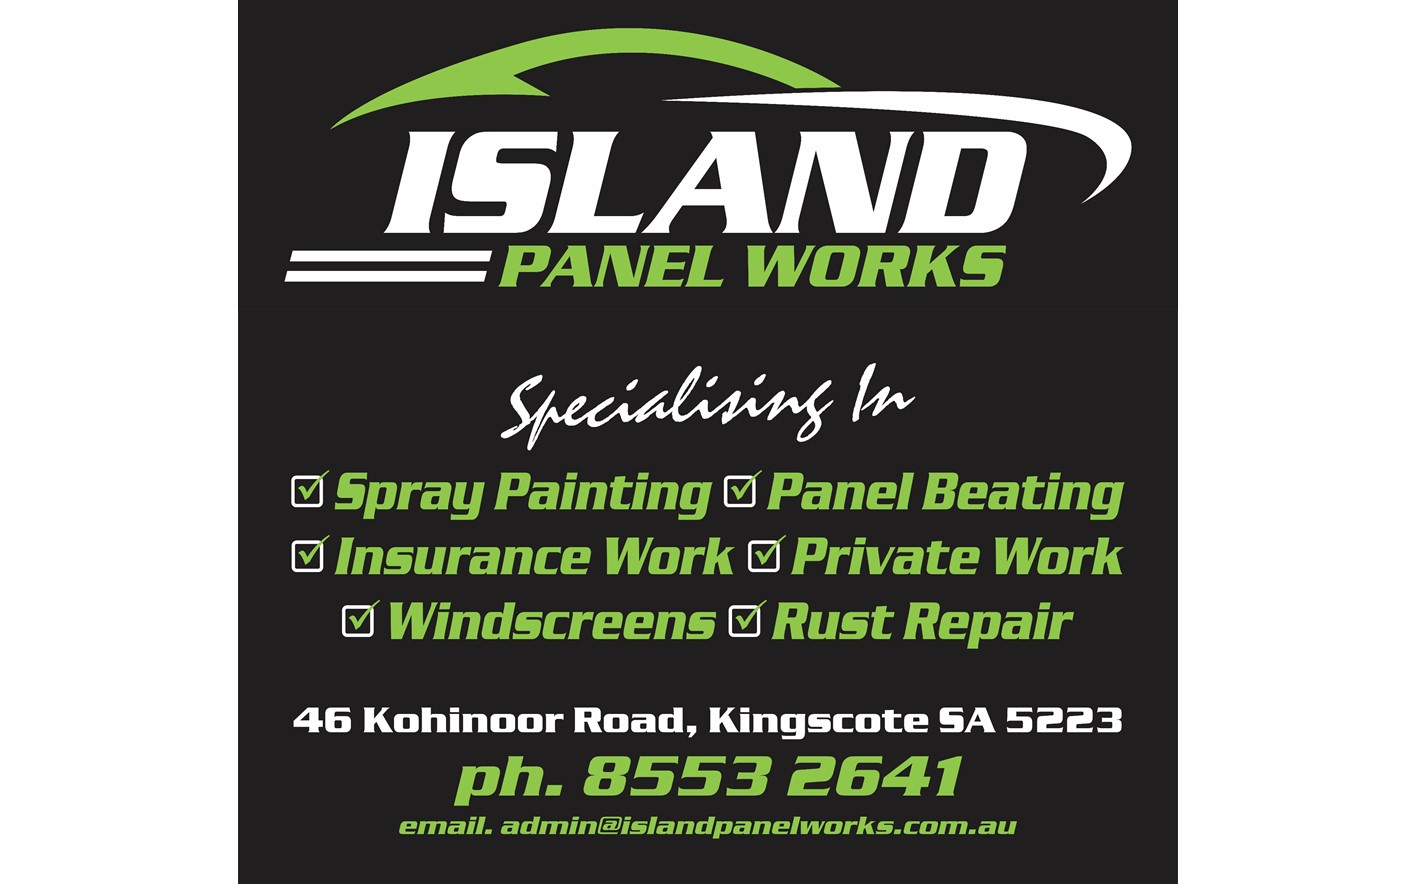 Island Panel Works Pty Ltd